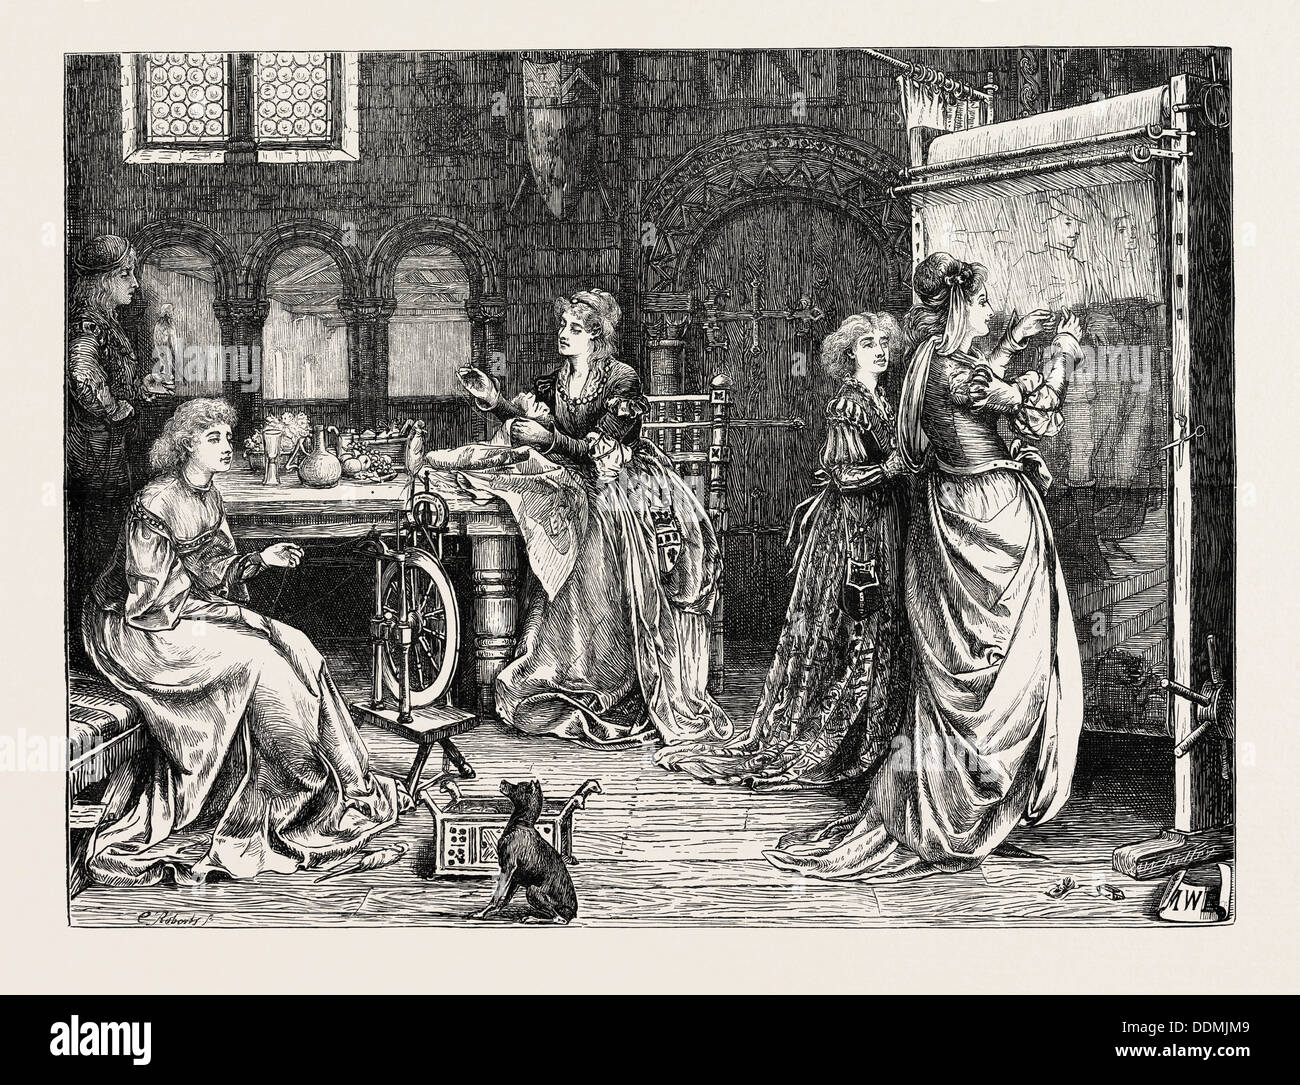 NEEDLEWORK IN THE OLDEN TIME: LADIES AT TAPESTRY WORK - Stock Image